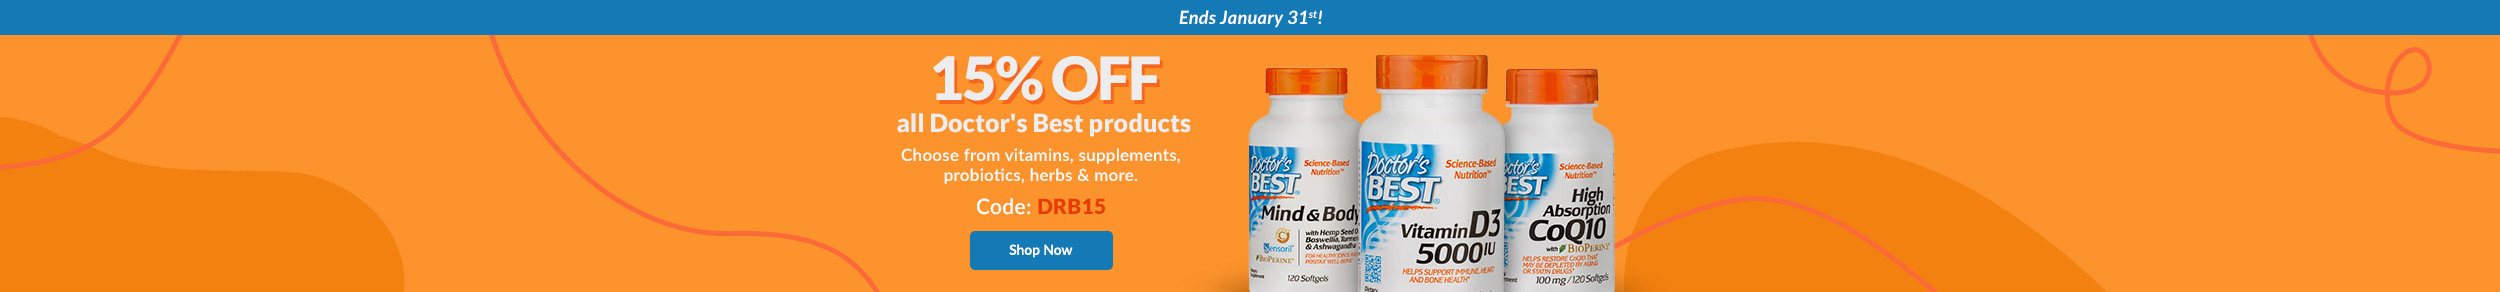 Sale ends January 31st! 15% OFF* all Doctor's Best products. Choose from vitamins, supplements, probiotics, herbs & more. Code: DRB15. SHOP NOW!